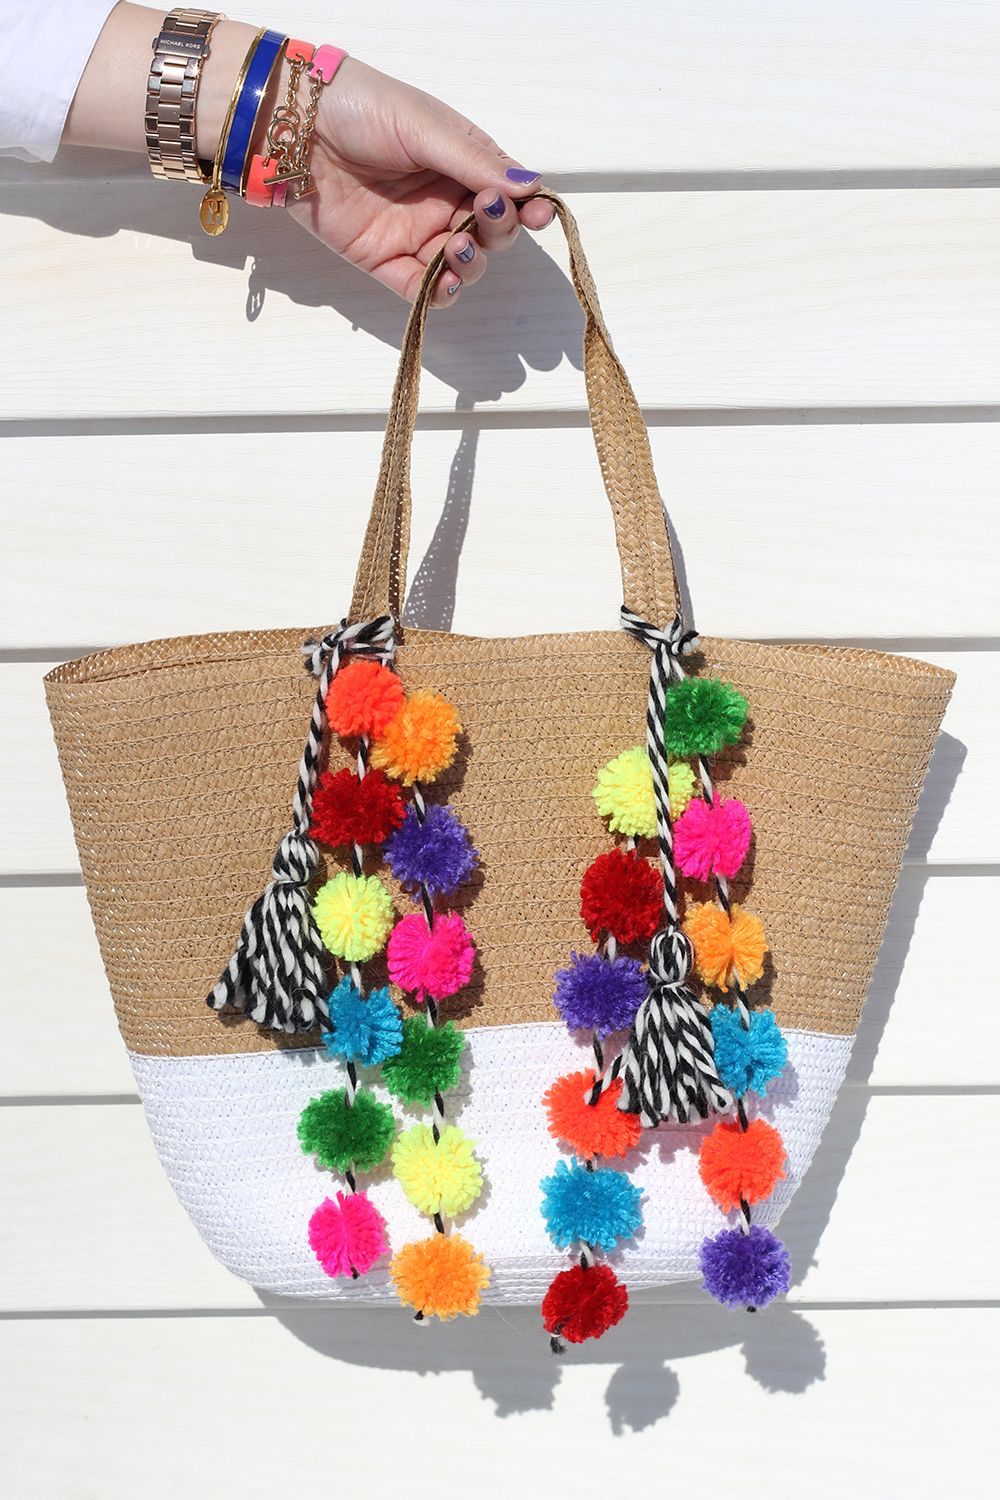 How to Make Your Own (Amazing!) Pom Pom Beach Bag